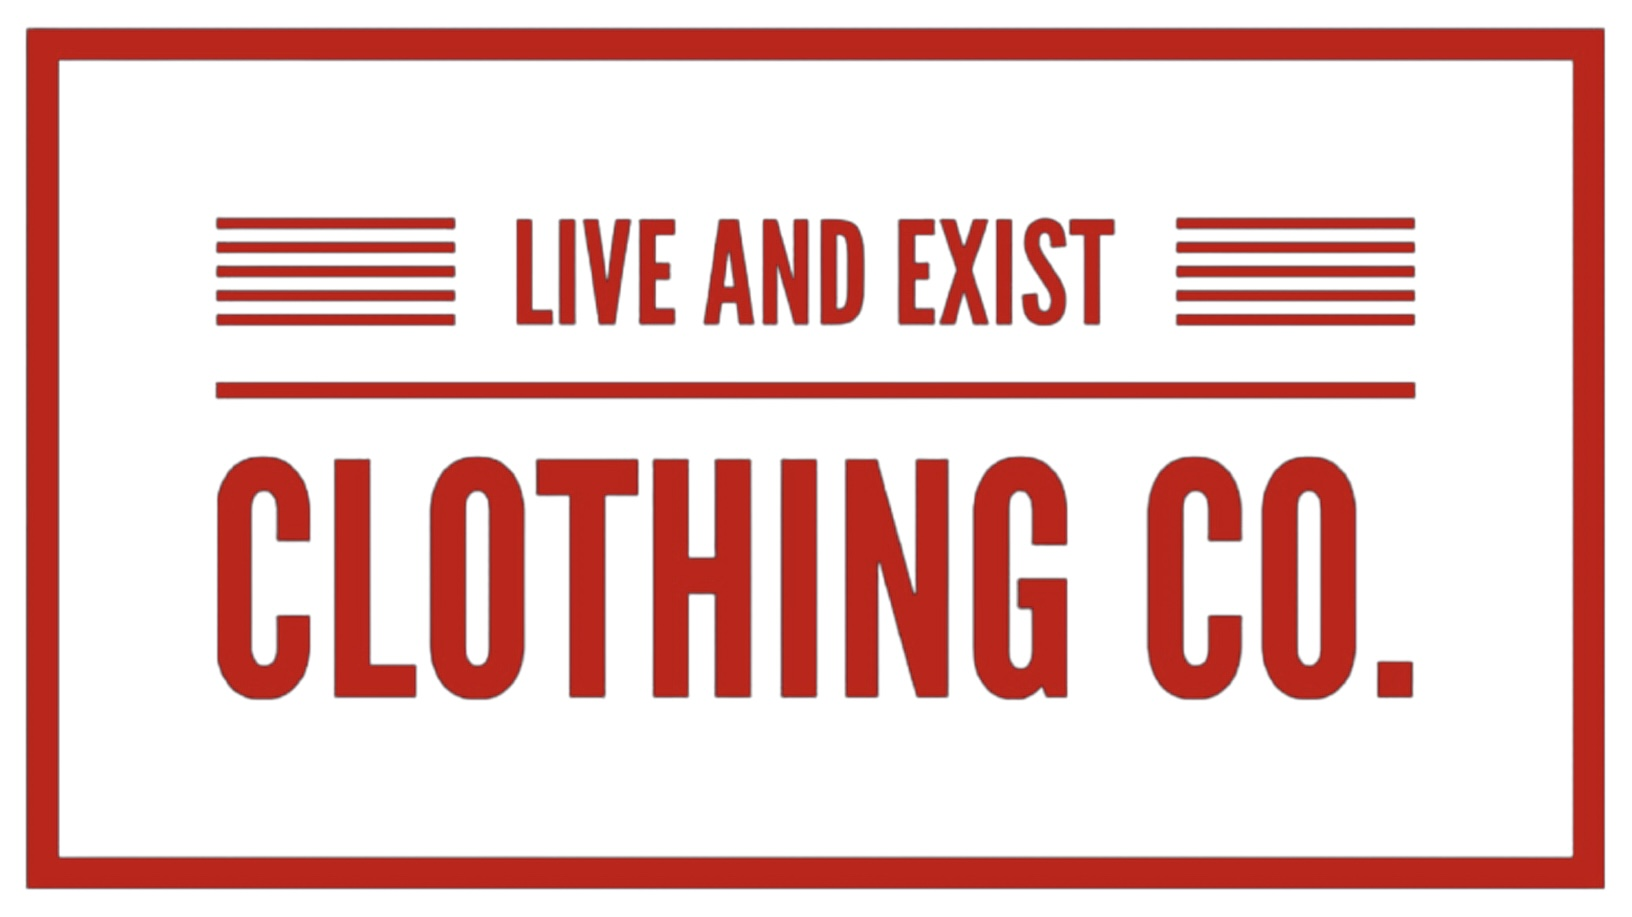 Live And Exist Clothing Co.